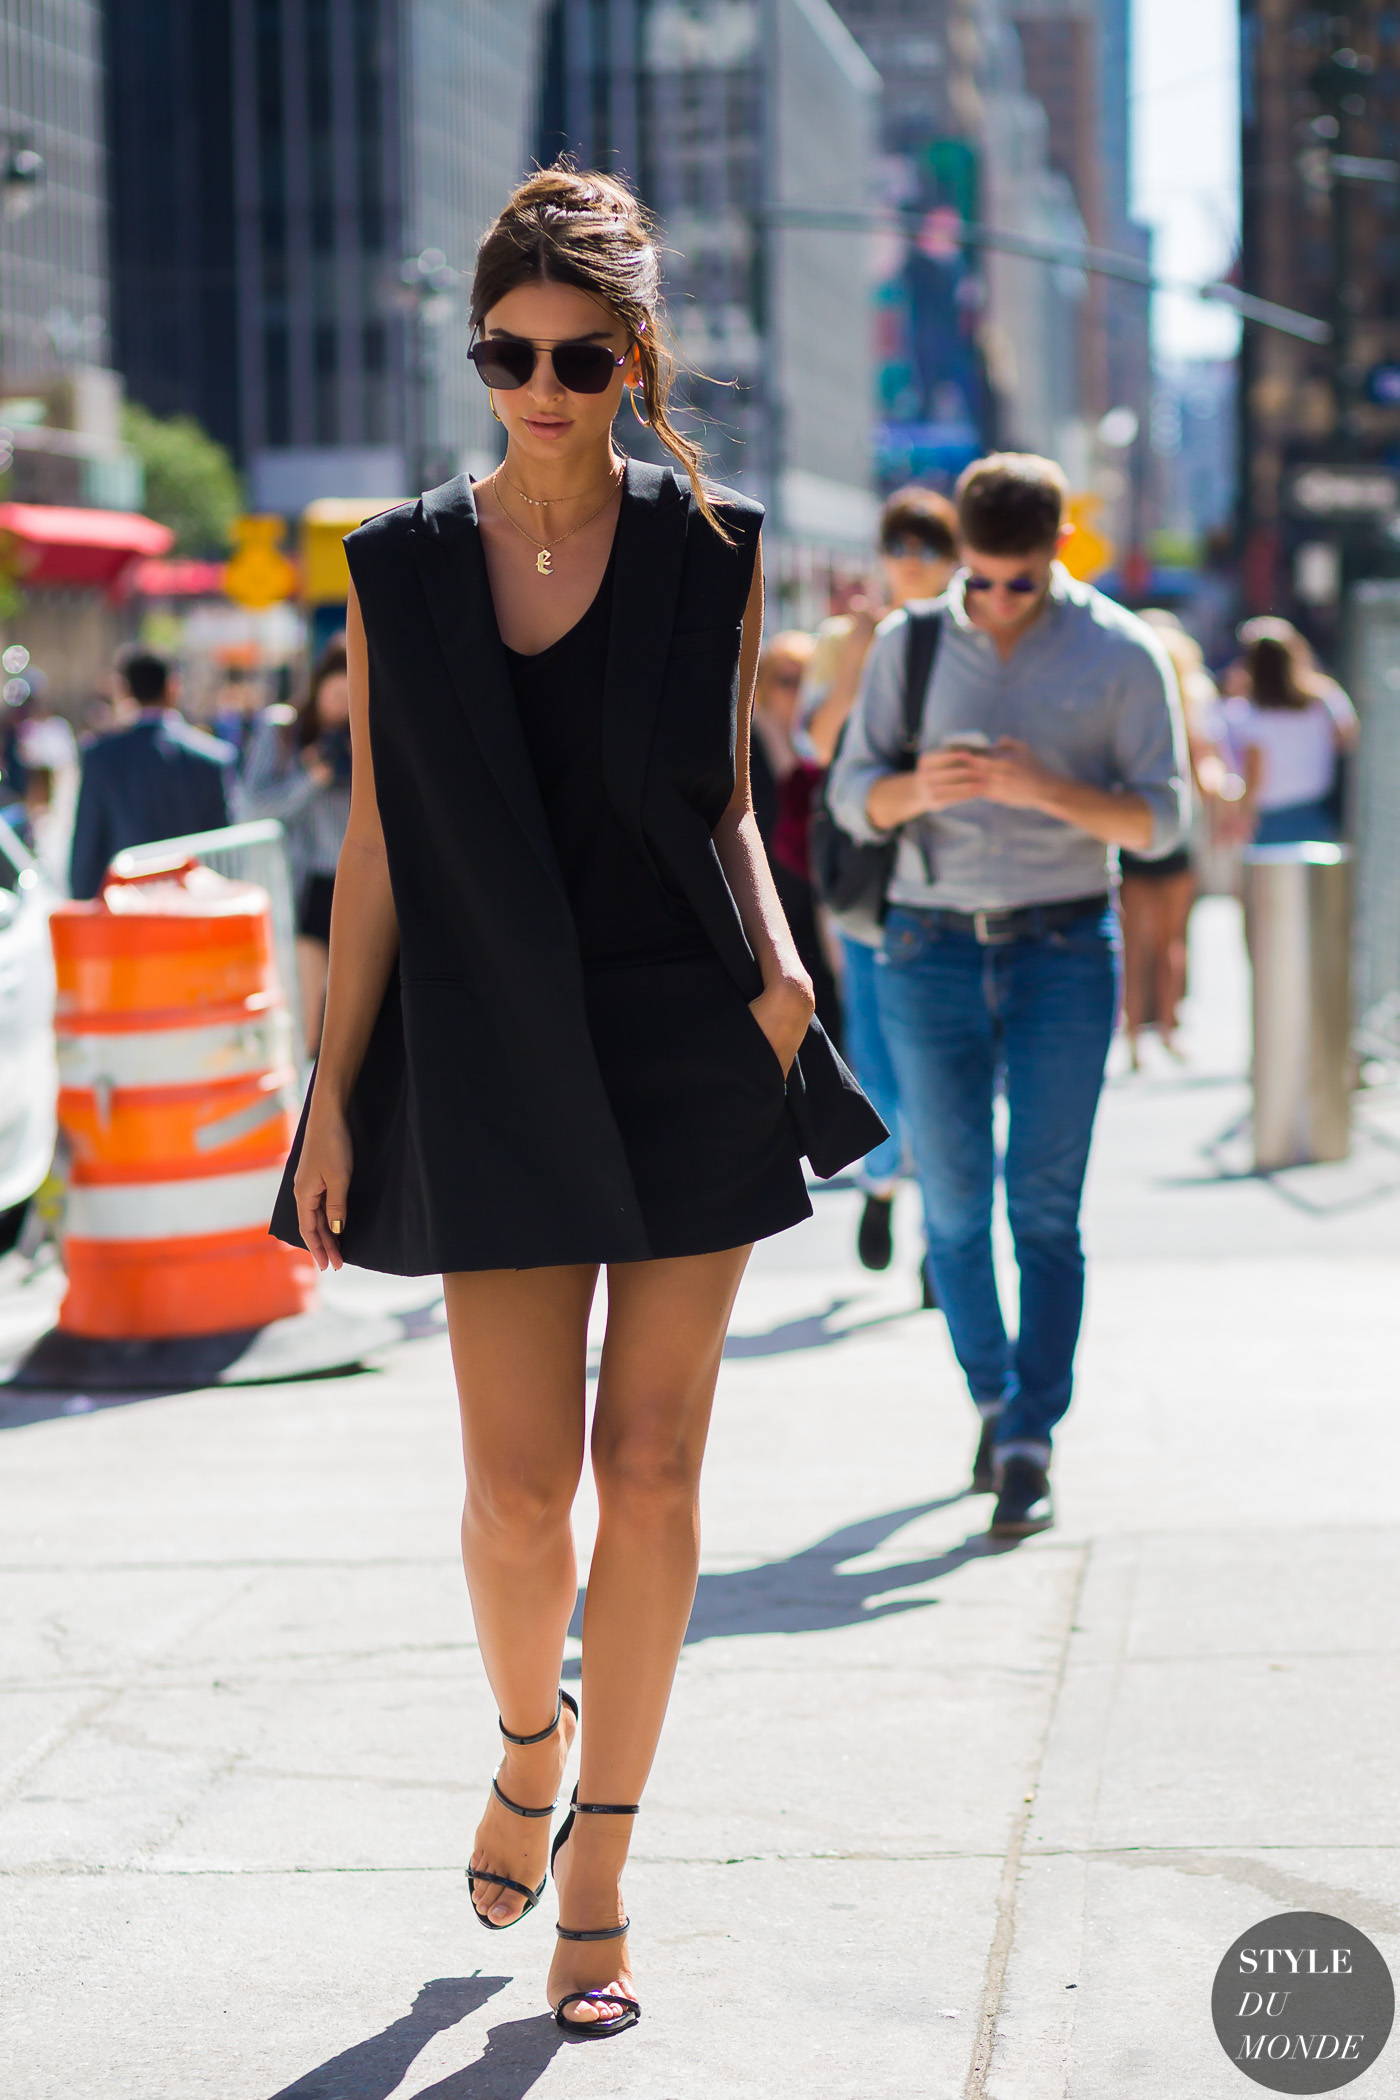 Emily Ratajkowski Style: 15 Looks You Can Easily Steal